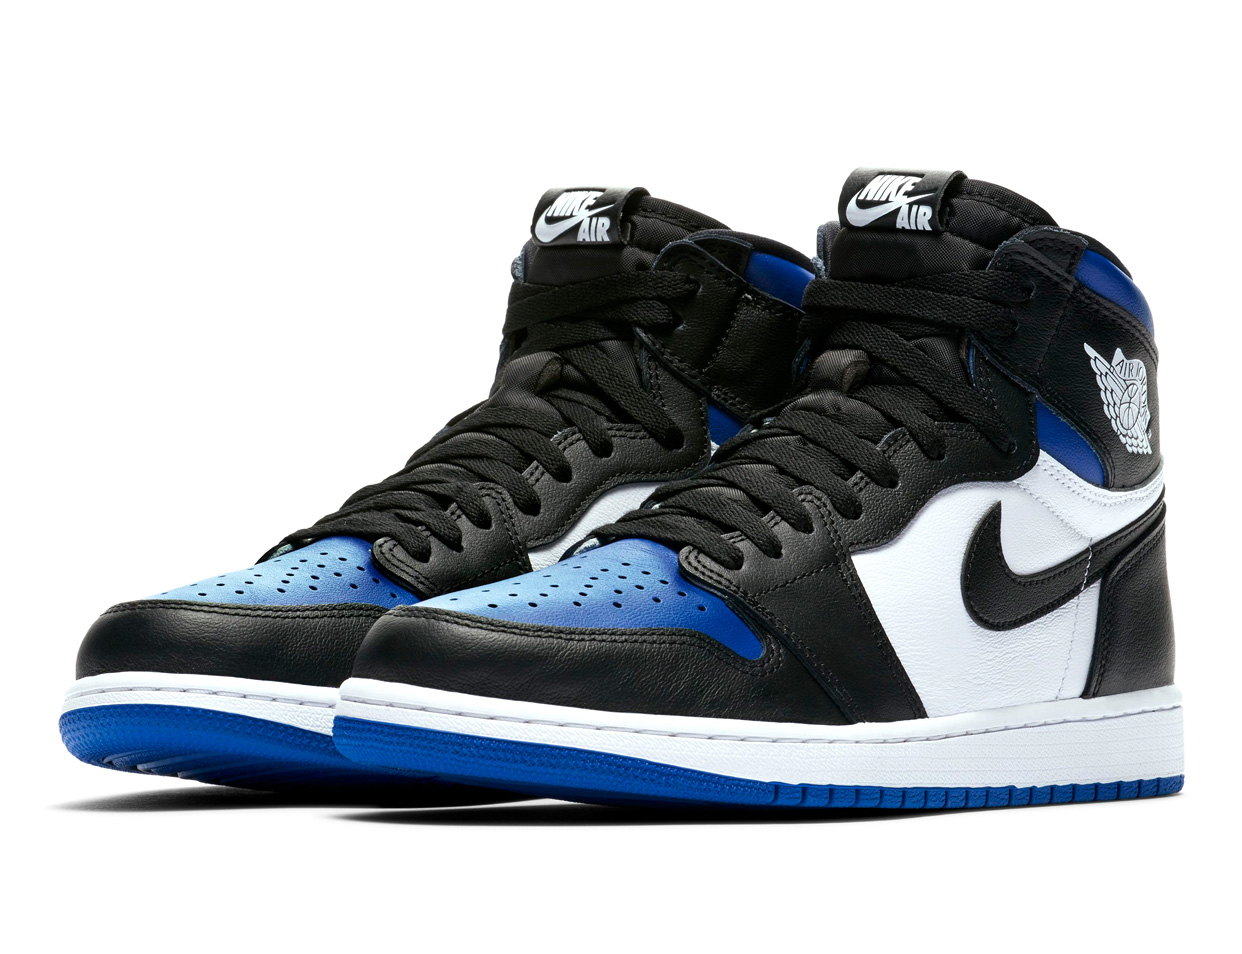 "A Classic Reborn: The Air Jordan 1 Retro High OG ""Game Royal"" at werd.com"